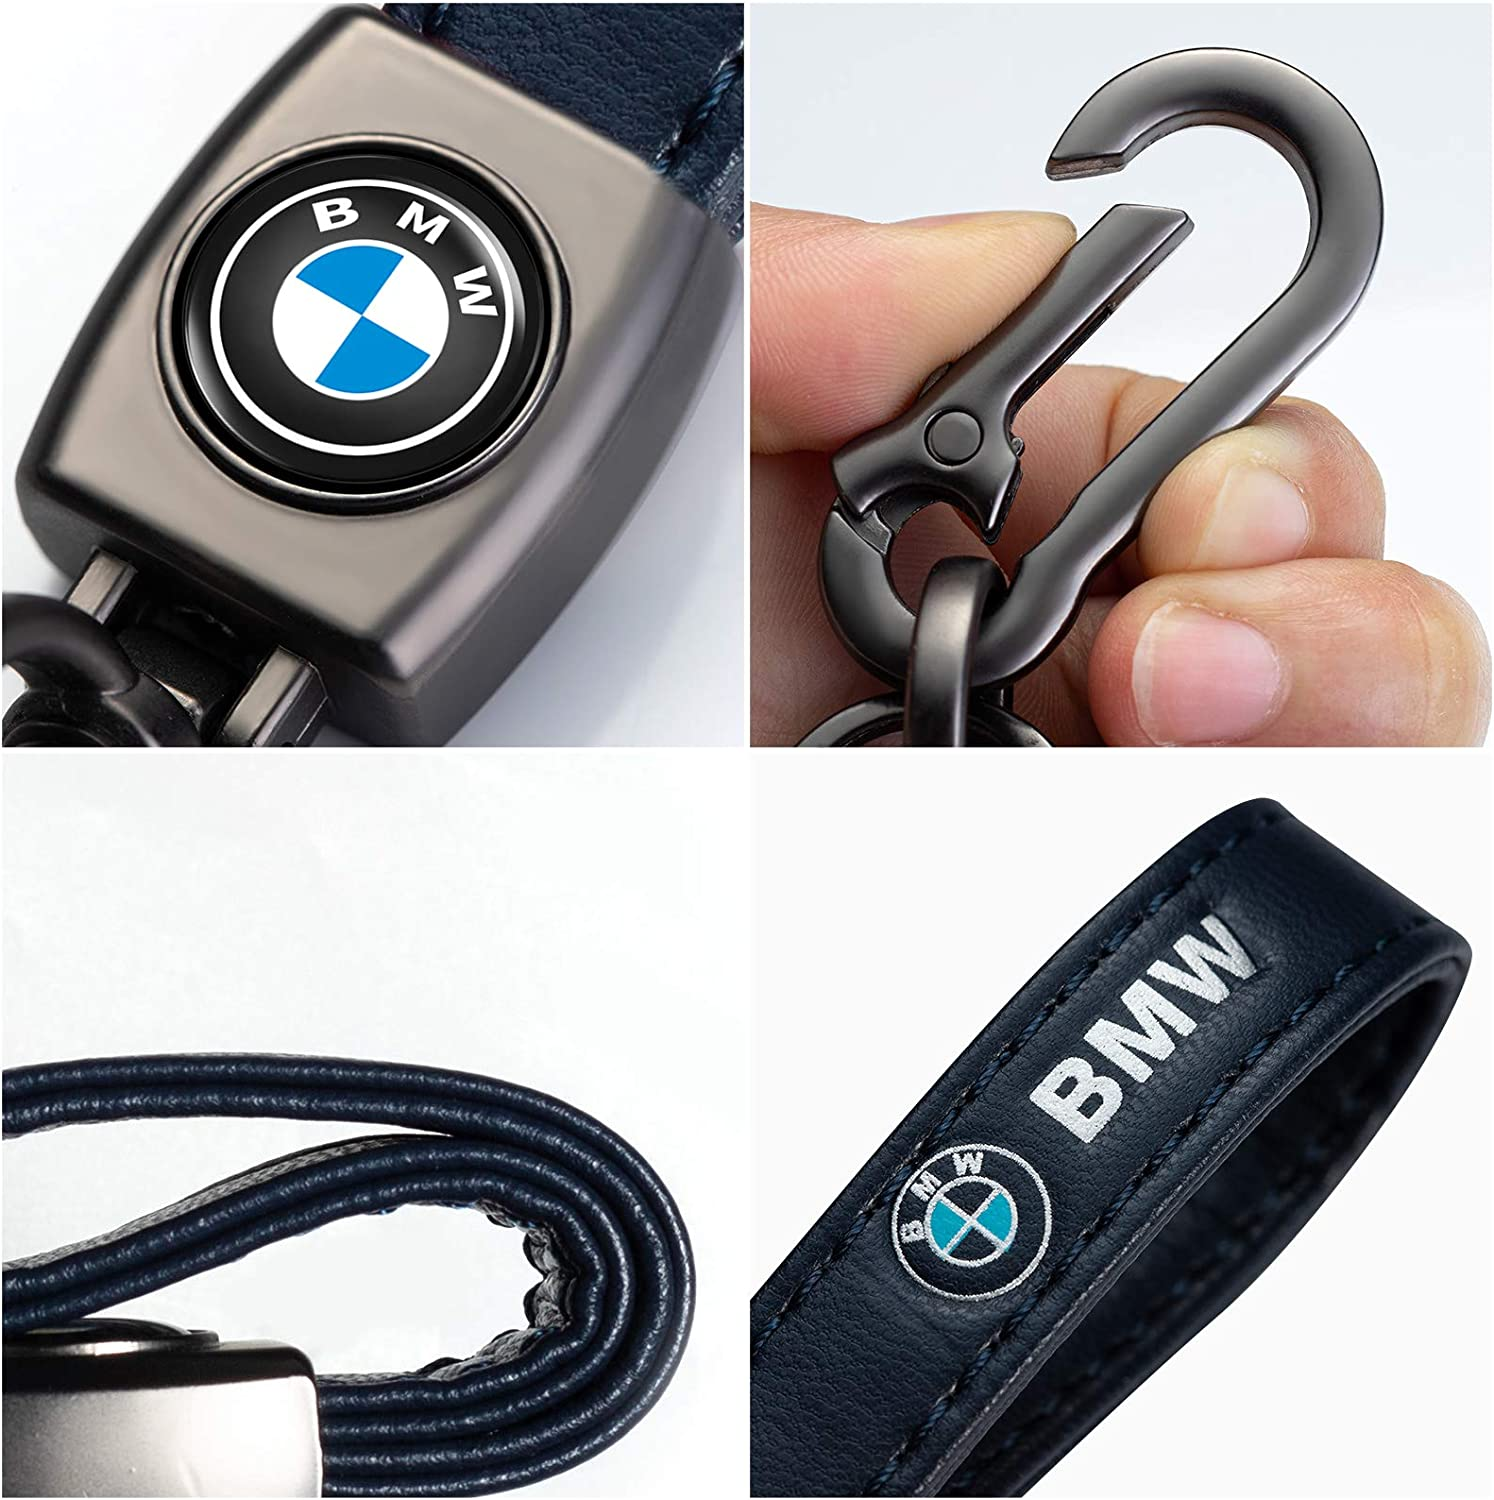 HGGH Car Logo Keychain Replacement for BMW Key Chain Accessories Keyring with Logo,Genuine Leather Key Chain Keyring Family Present for Man and Woman